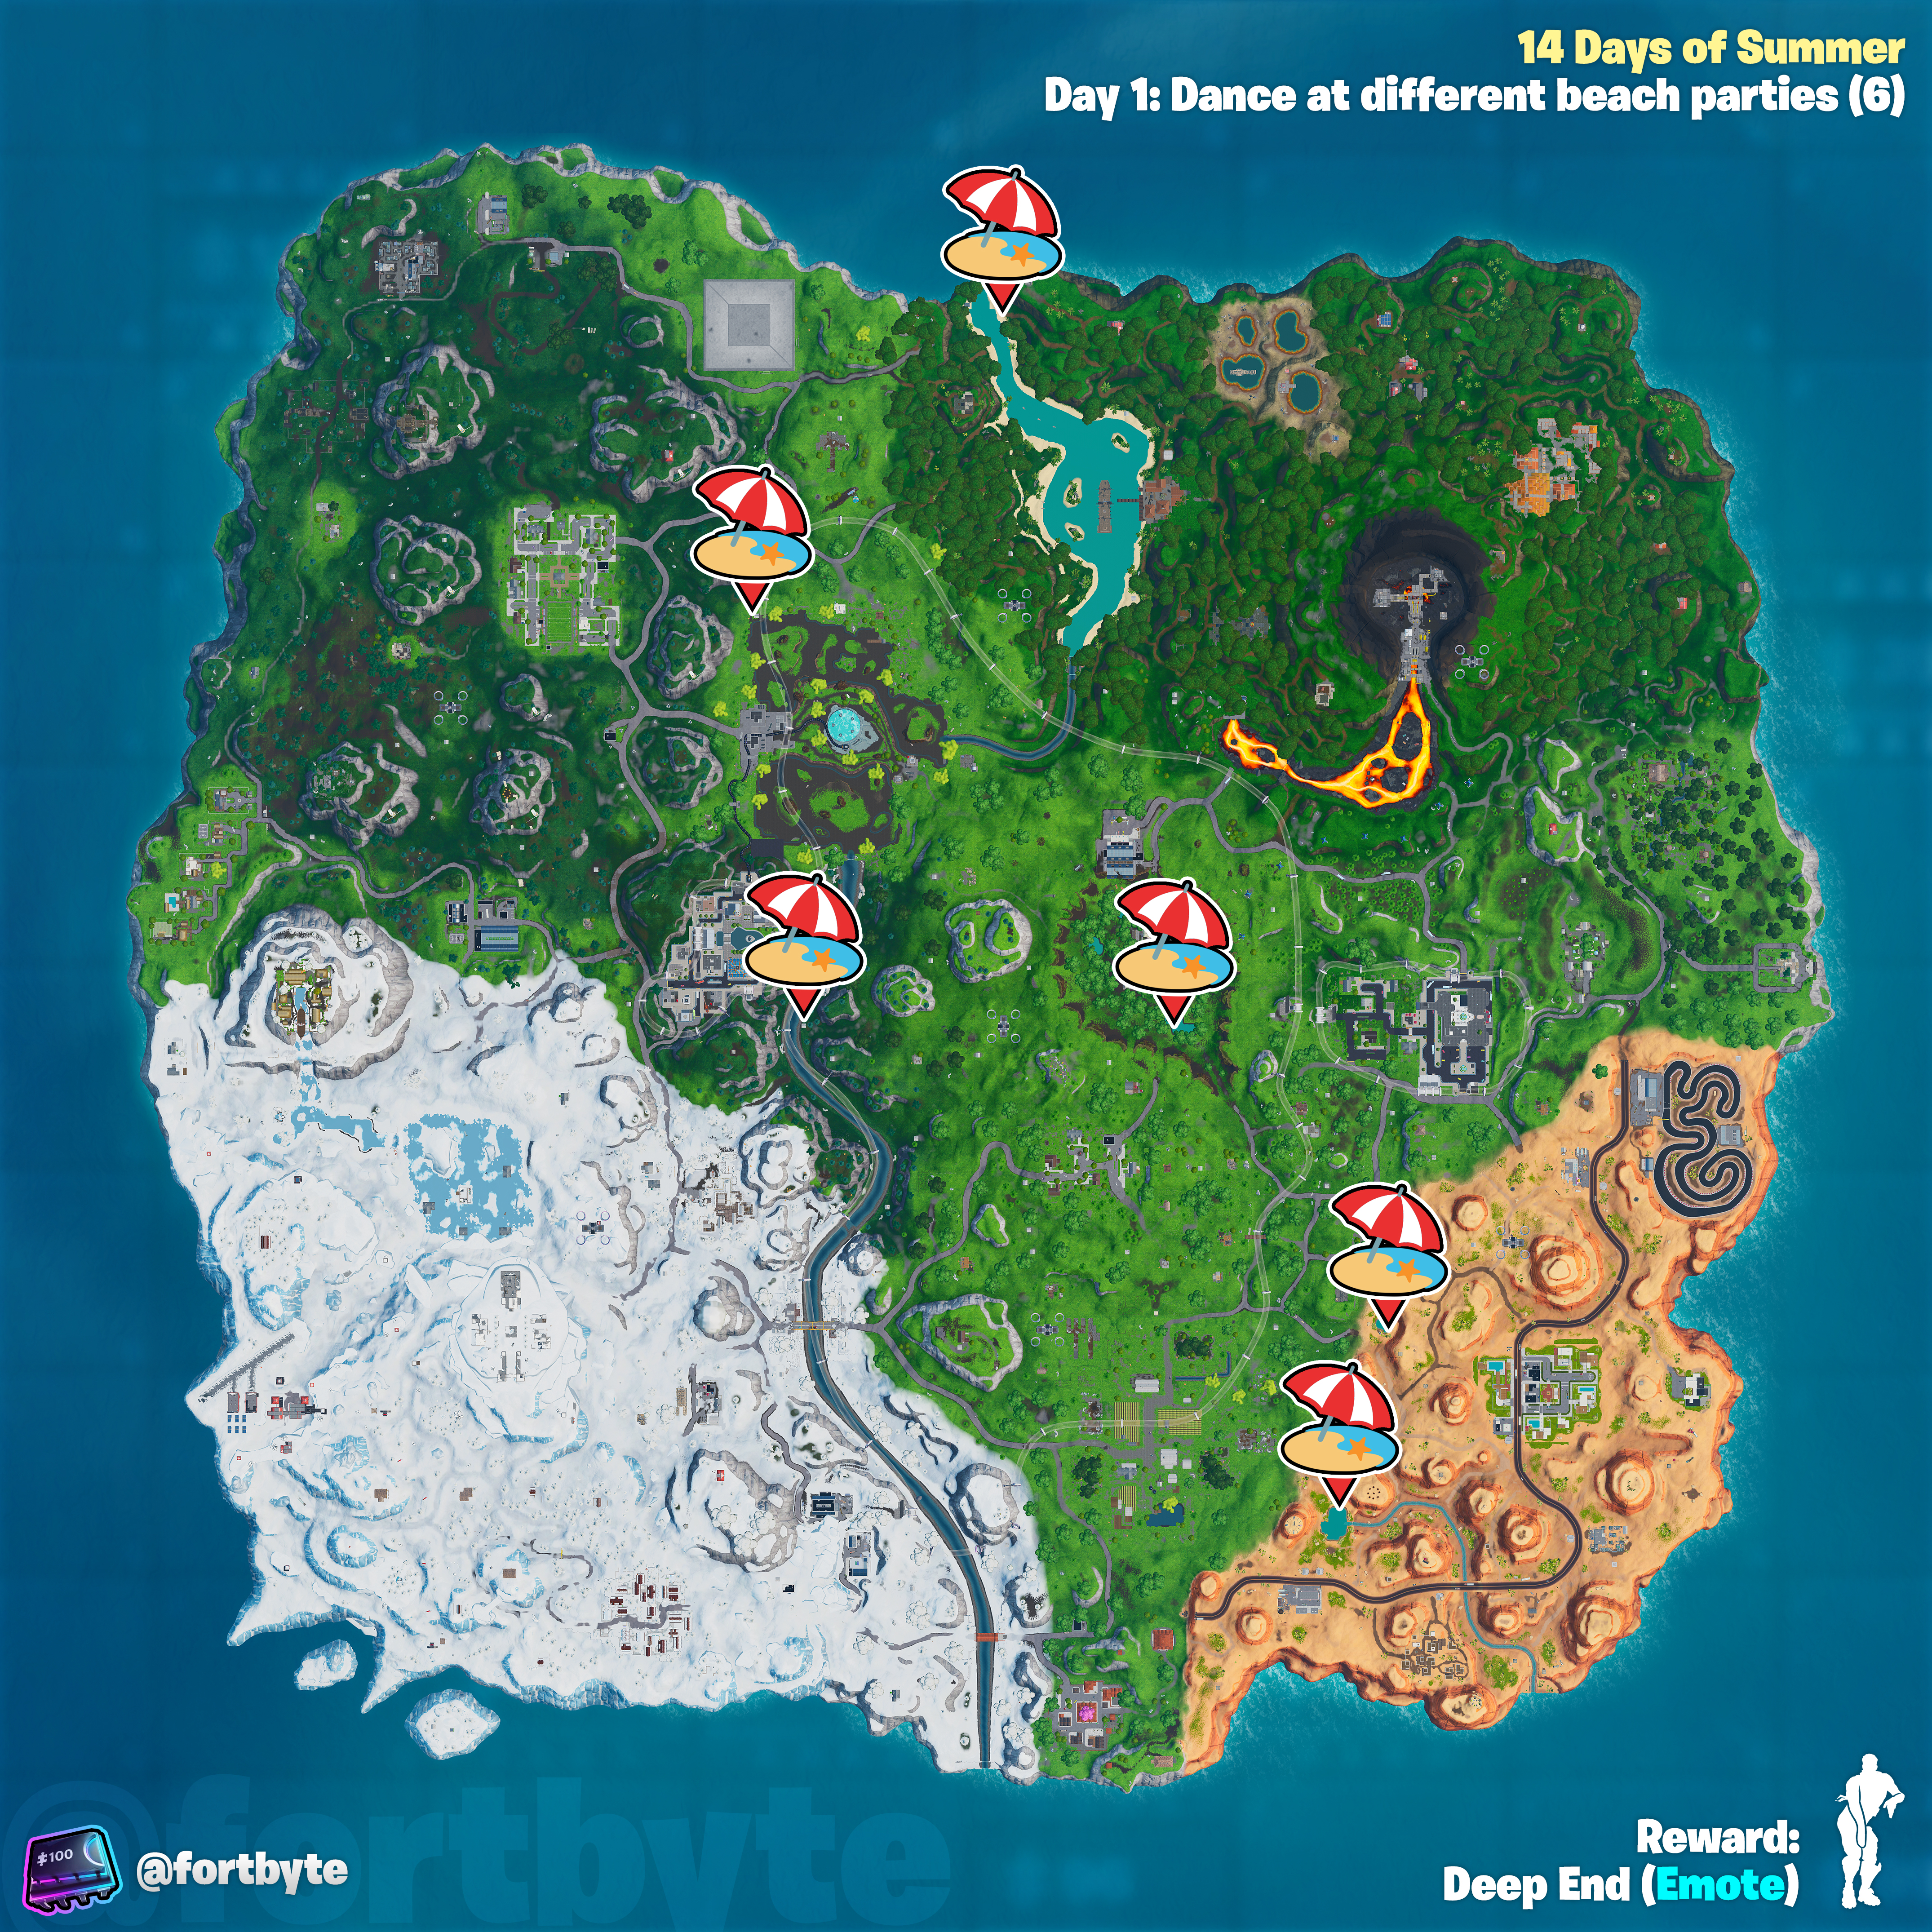 , Fortnite 14 Days of Summer – Dance at different beach parties location guide, AllYourGames.com, AllYourGames.com